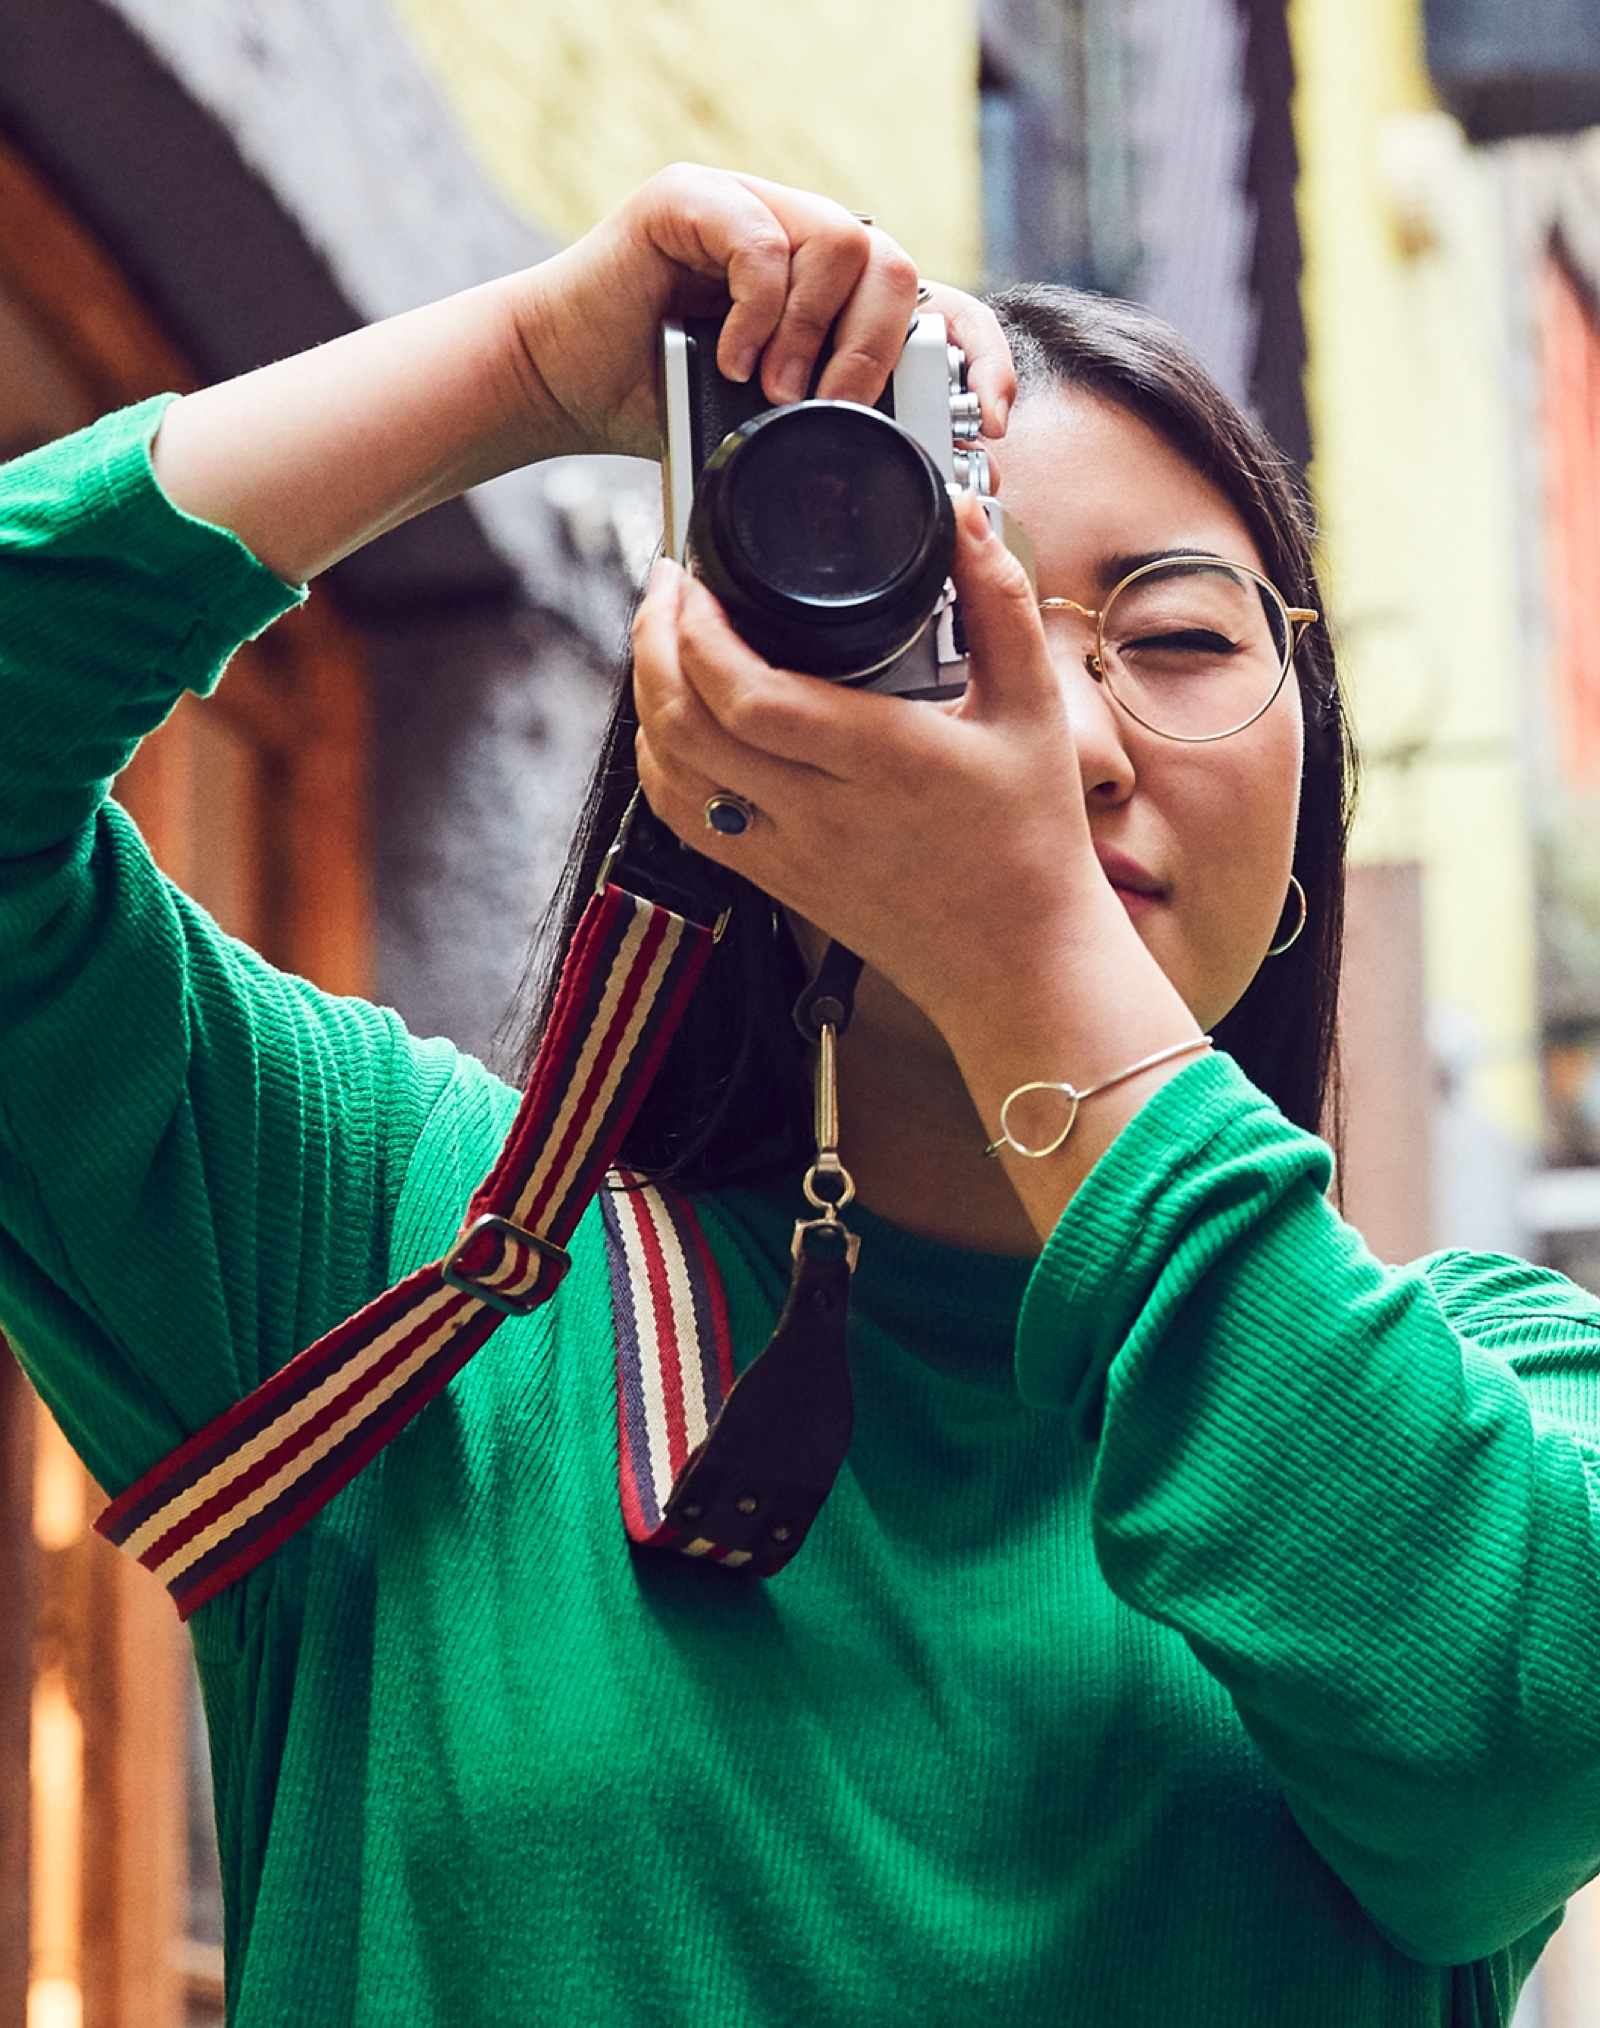 A female Apple Store employee takes photos with a traditional 35mm camera on a city street.